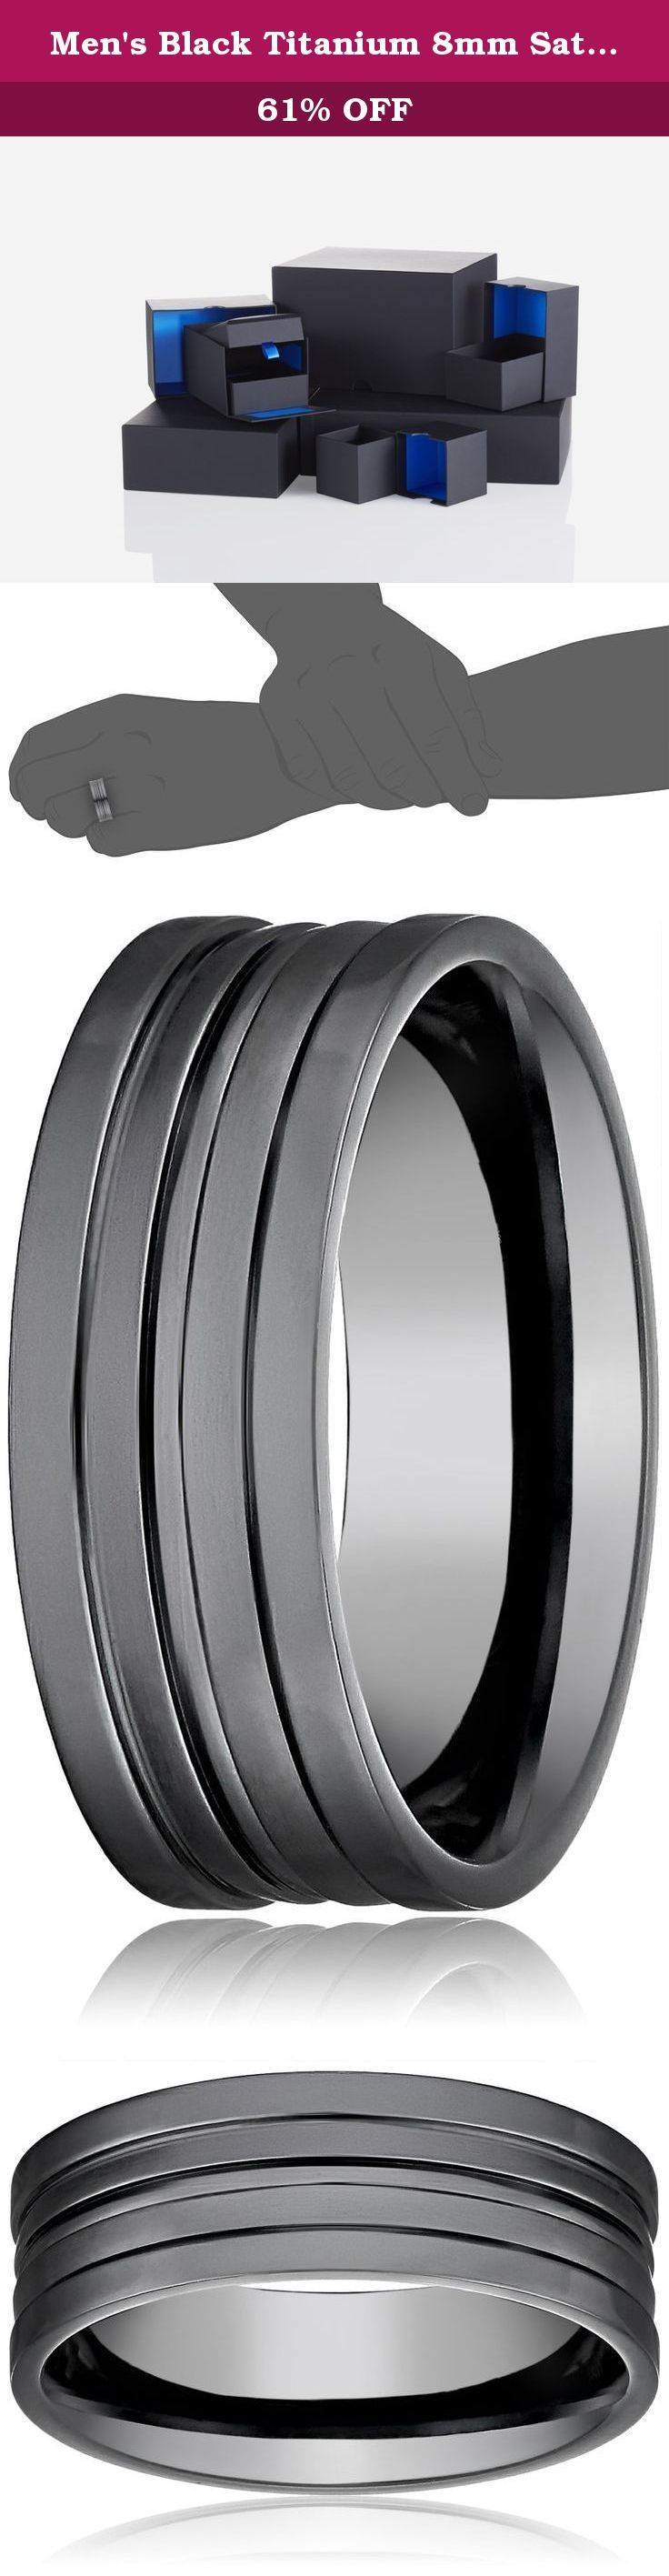 Men's Black Titanium 8mm Satin Finish Comfort Fit Plain Wedding Band with High Polished Center Size 9.5. Match his contemporary style with the Men's Black Titanium 8mm Satin Finish Comfort Fit Wedding Band with High Polished Center. This sleek black titanium design features a satin finish that emphasizes the unique double cut-out center cut. The comfort fit curve inside the ring allows for easy wear throughout the day. Titanium is an excellent choice for anyone with metal sensitivities…